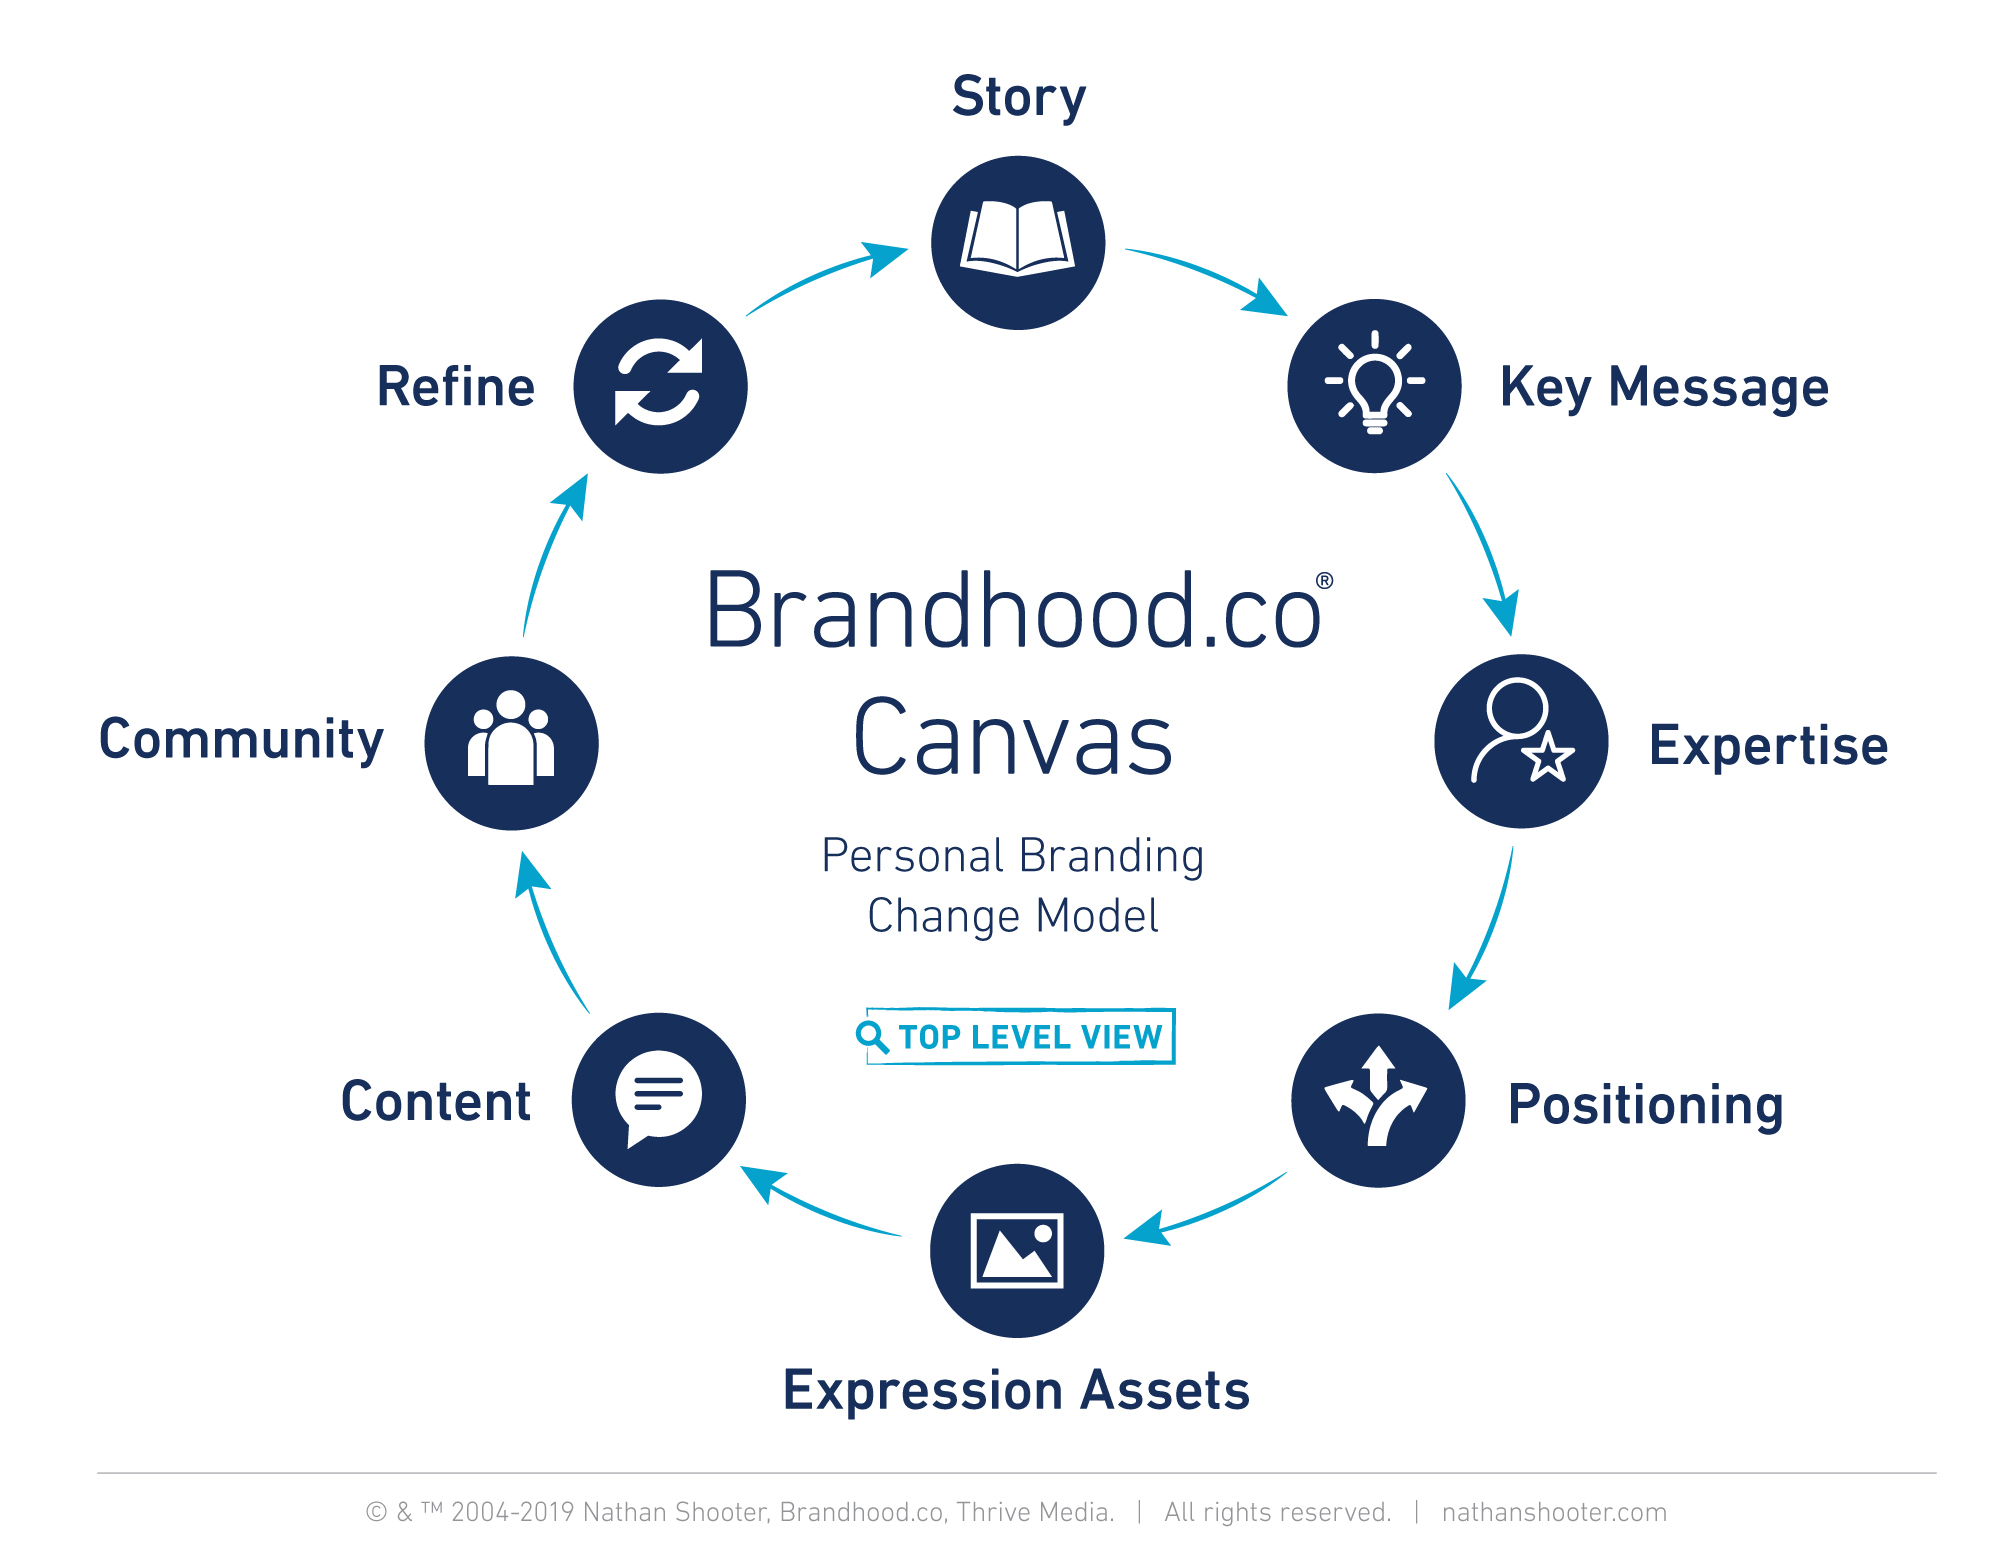 The Brandhood.co Canvas, a personal branding change model developed by Nathan Shooter.